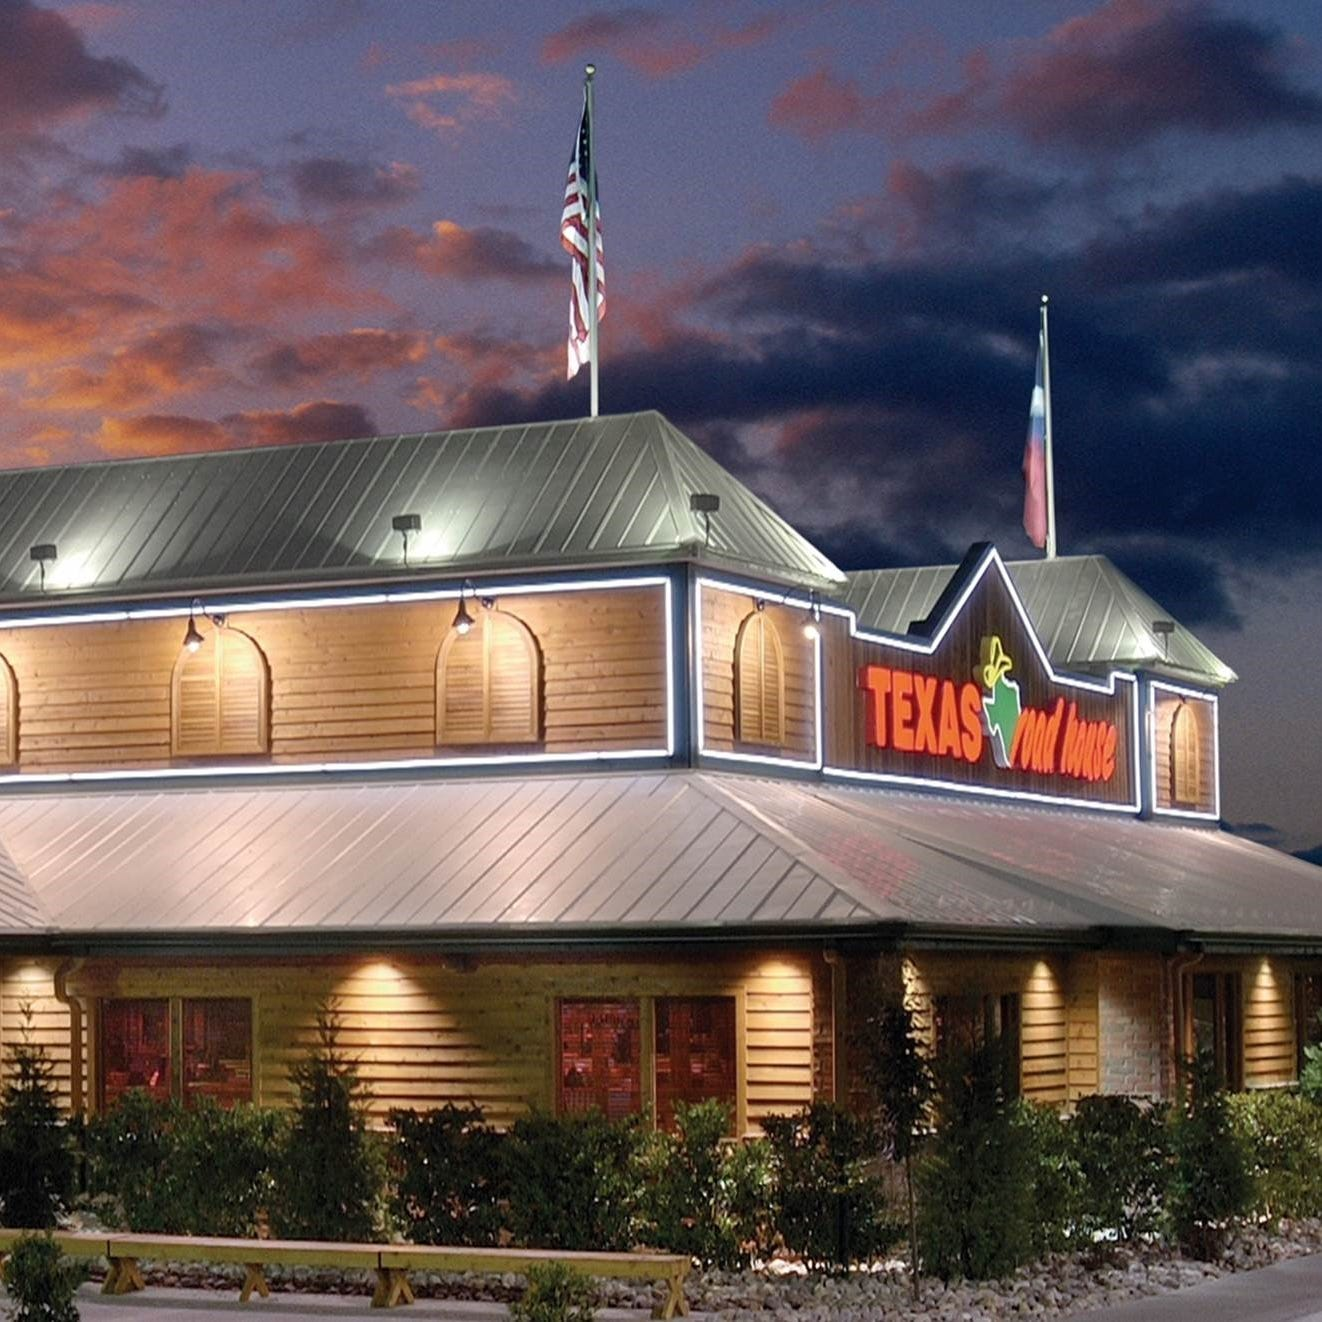 New Texas Roadhouse location in Carmel, Westfield boundary to bring 200 new jobs